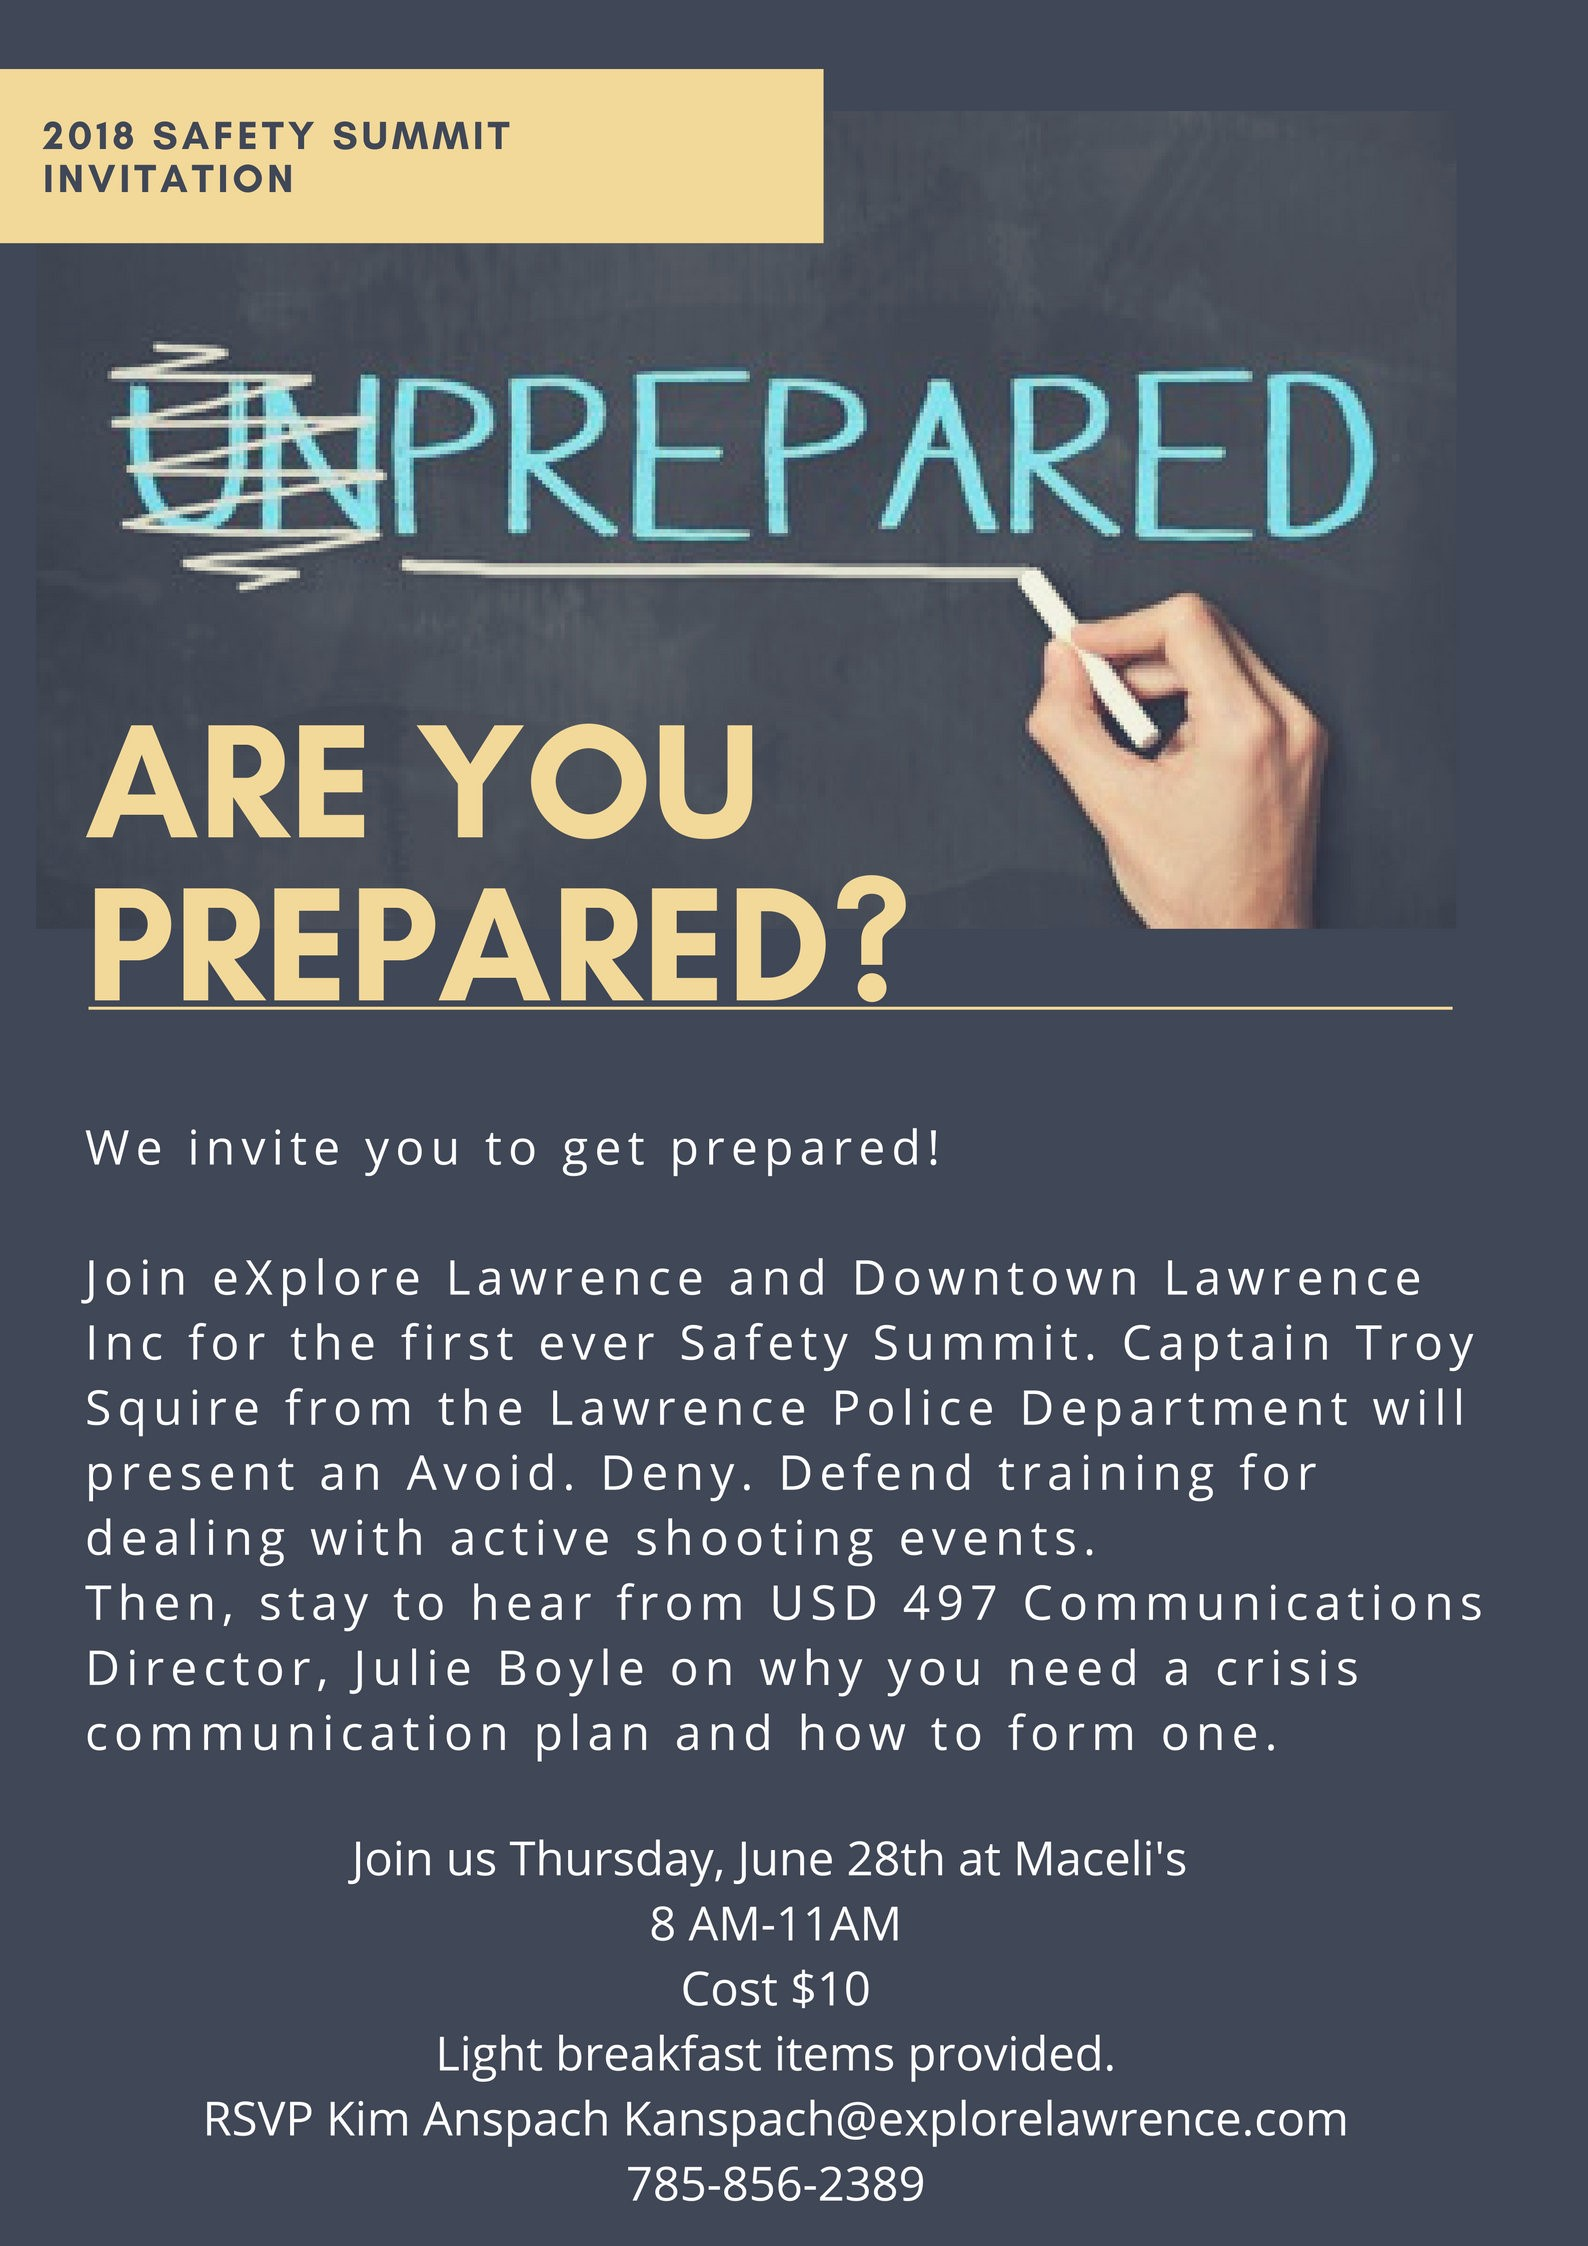 EXPLORE LAWRENCE AND DOWNTOWN LAWRENCE INC HOSTING SAFETY SUMMIT